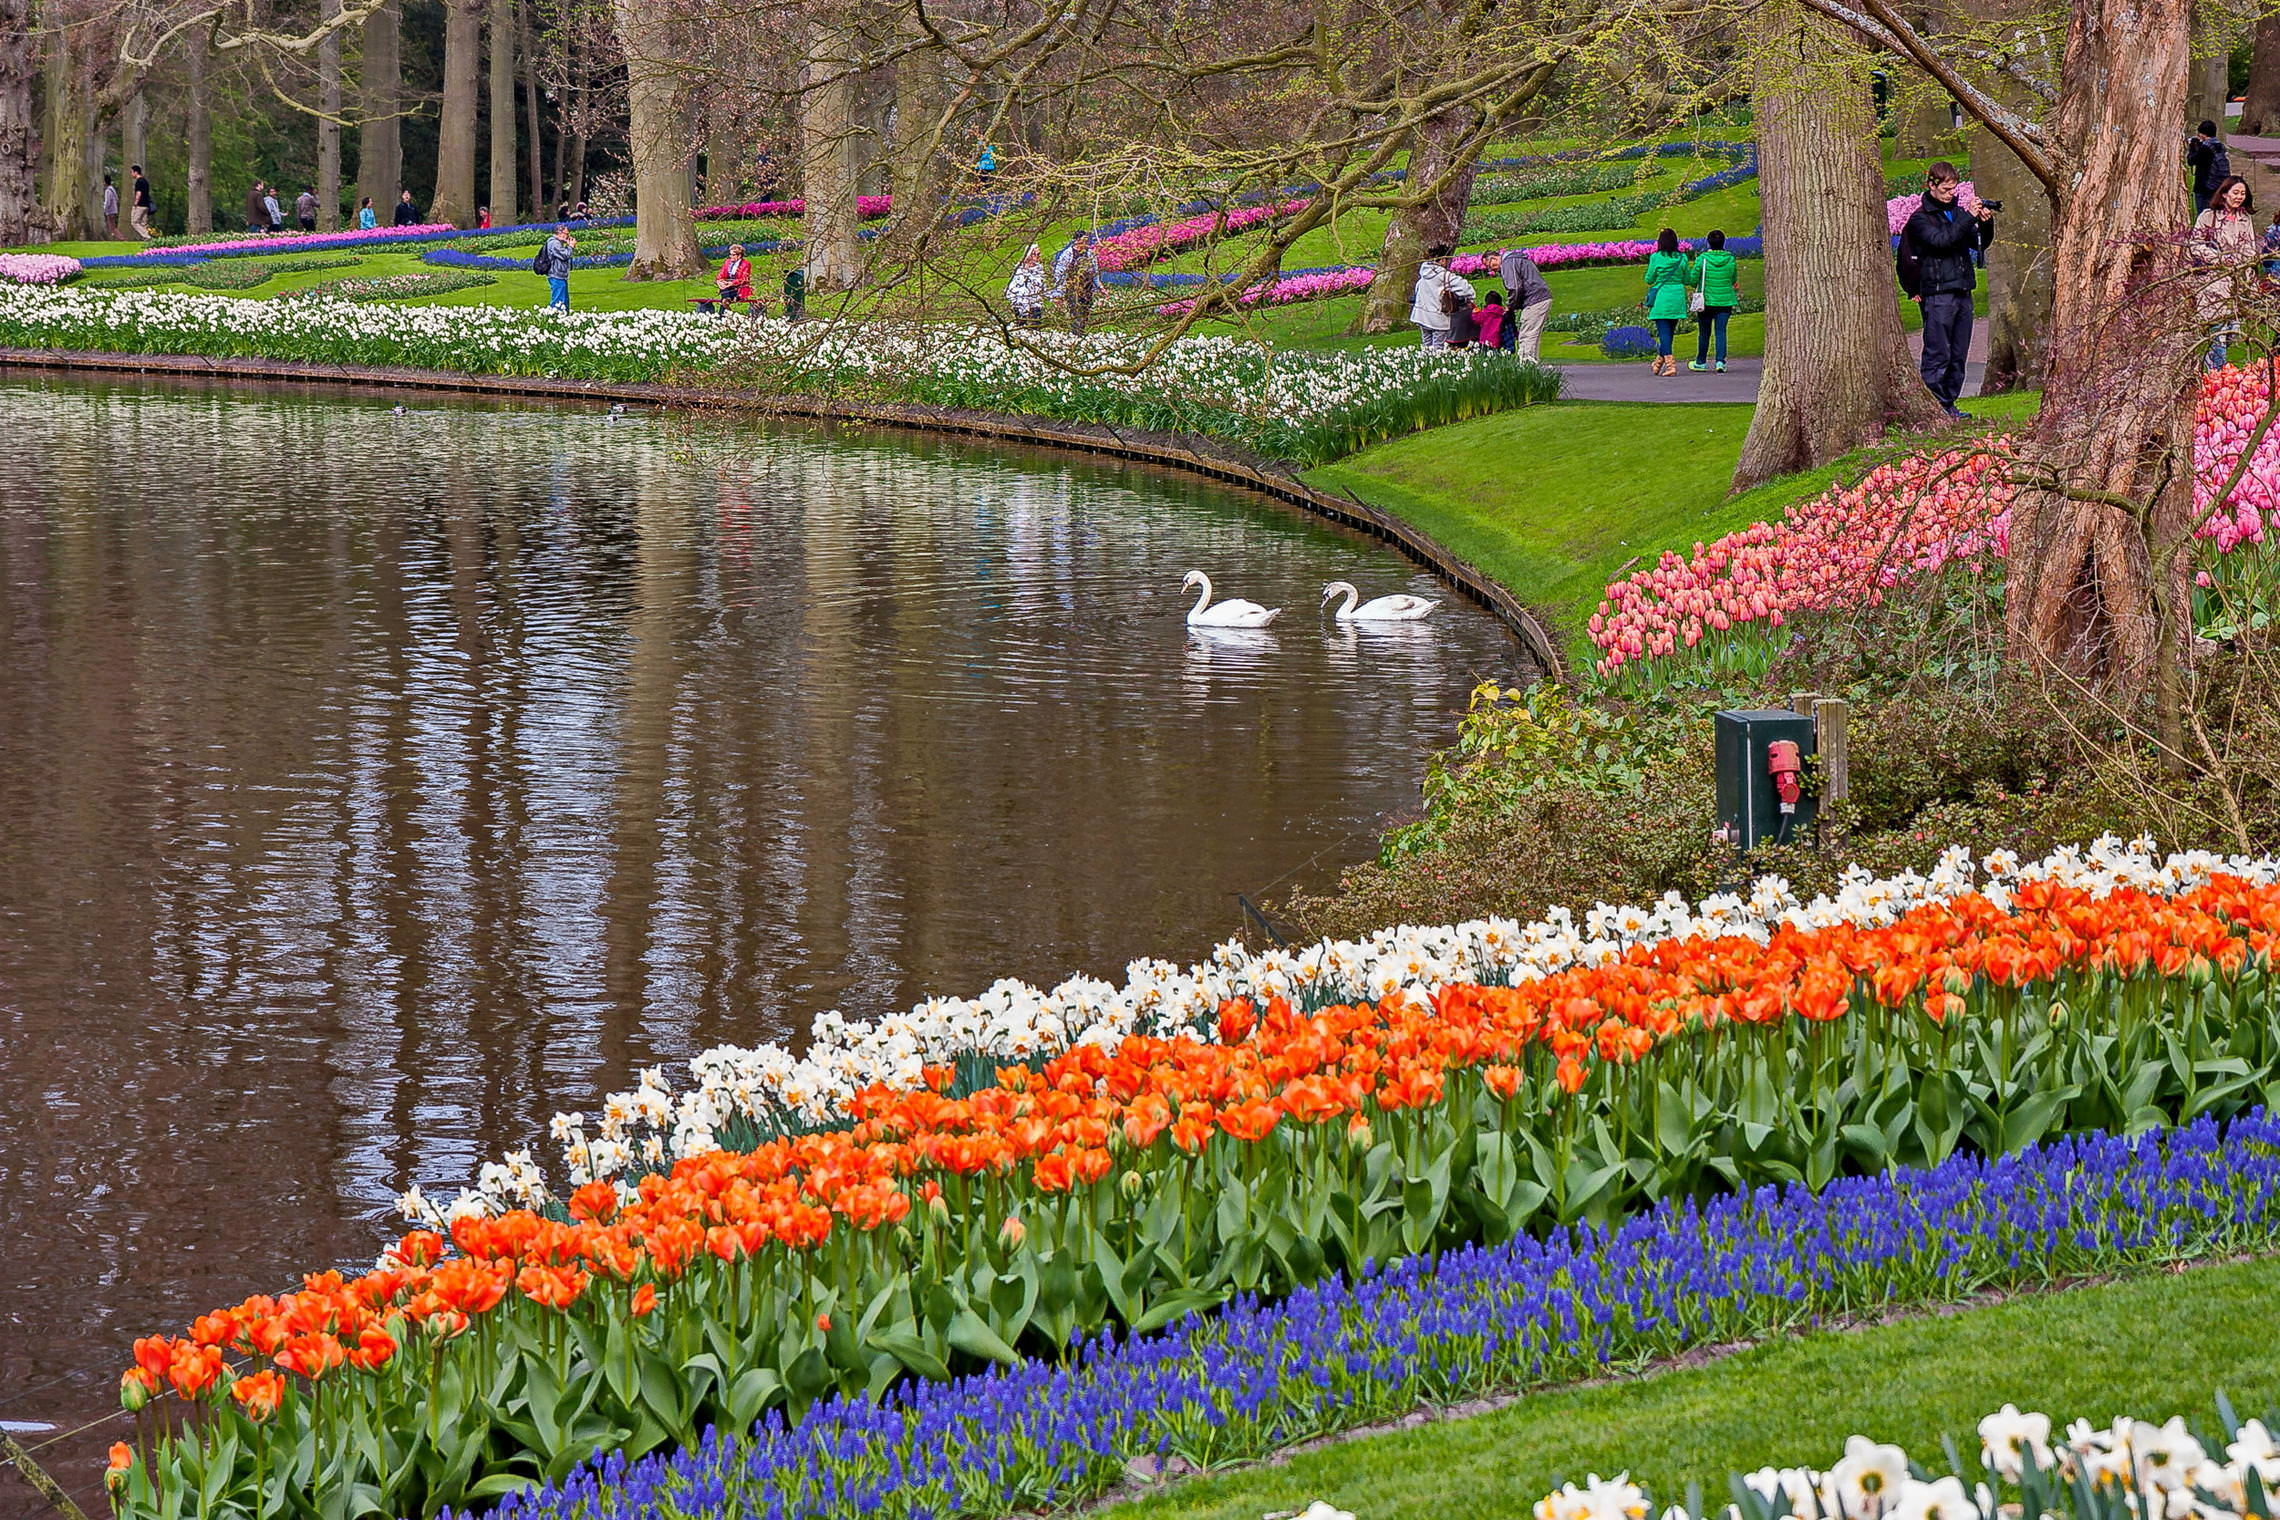 Tulips in Holland 04-205 (22)